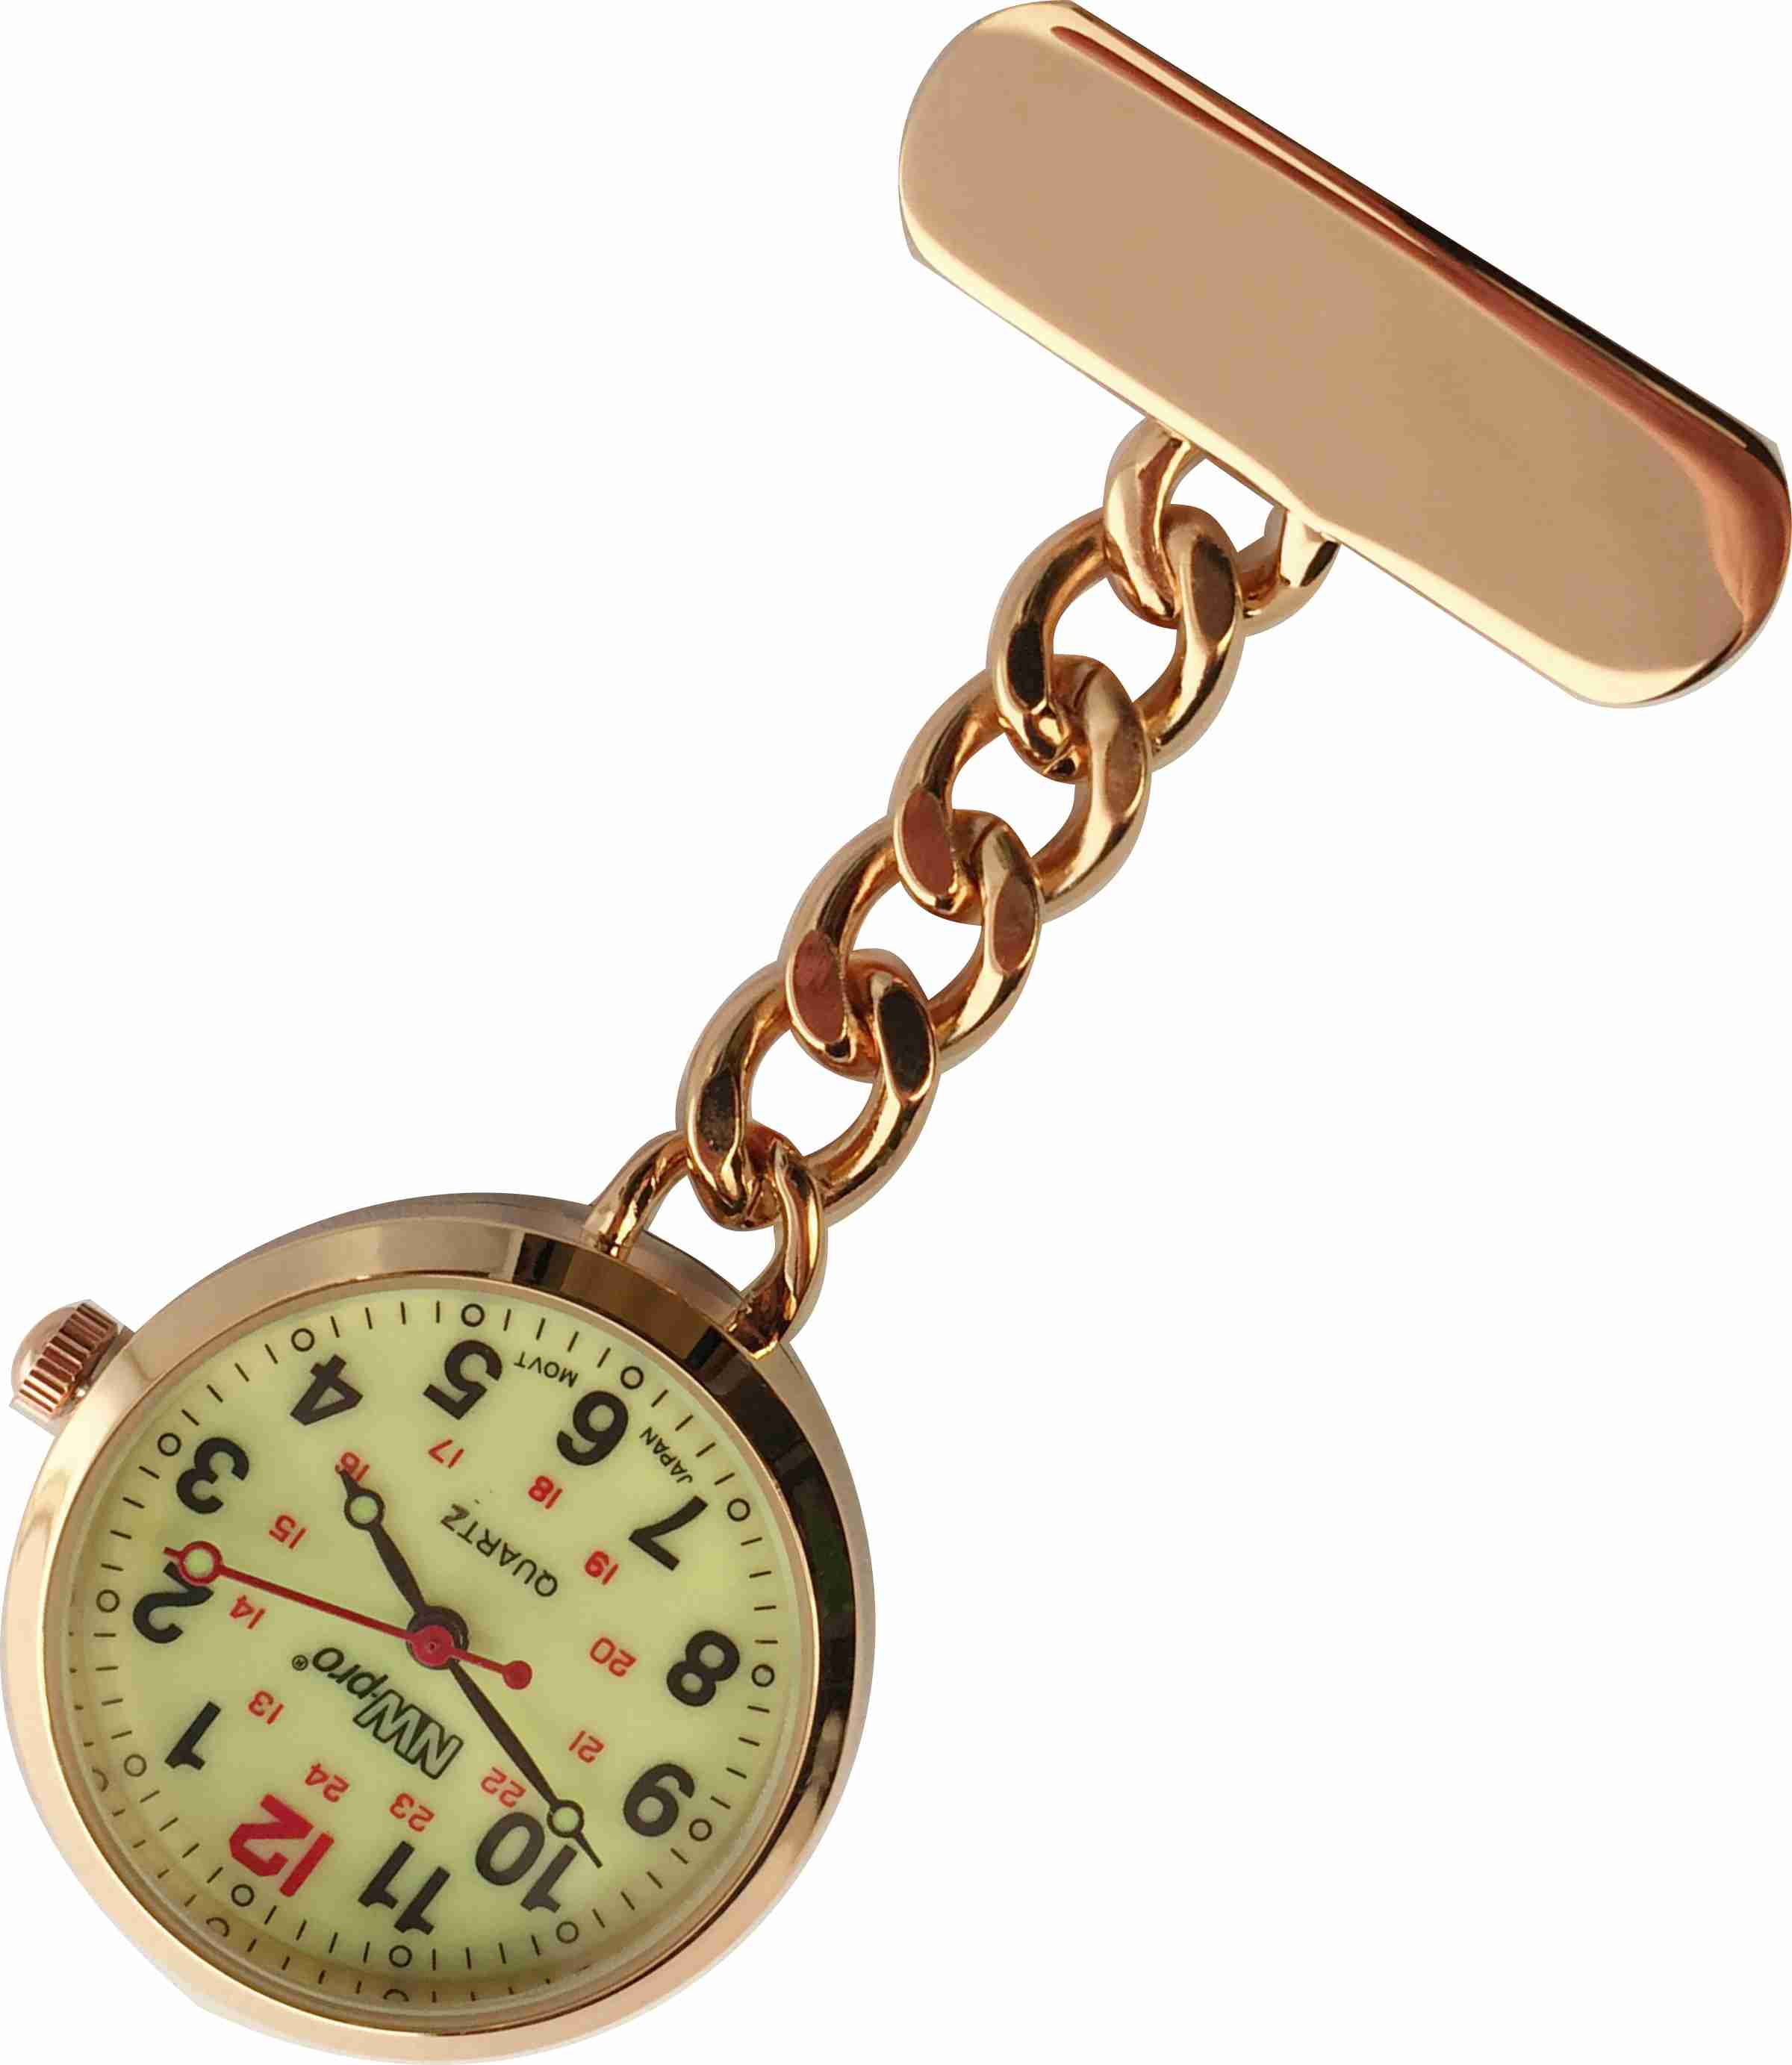 Nurses Pinned Watch - Nw-pro Chain - Rose Gold - Luminous